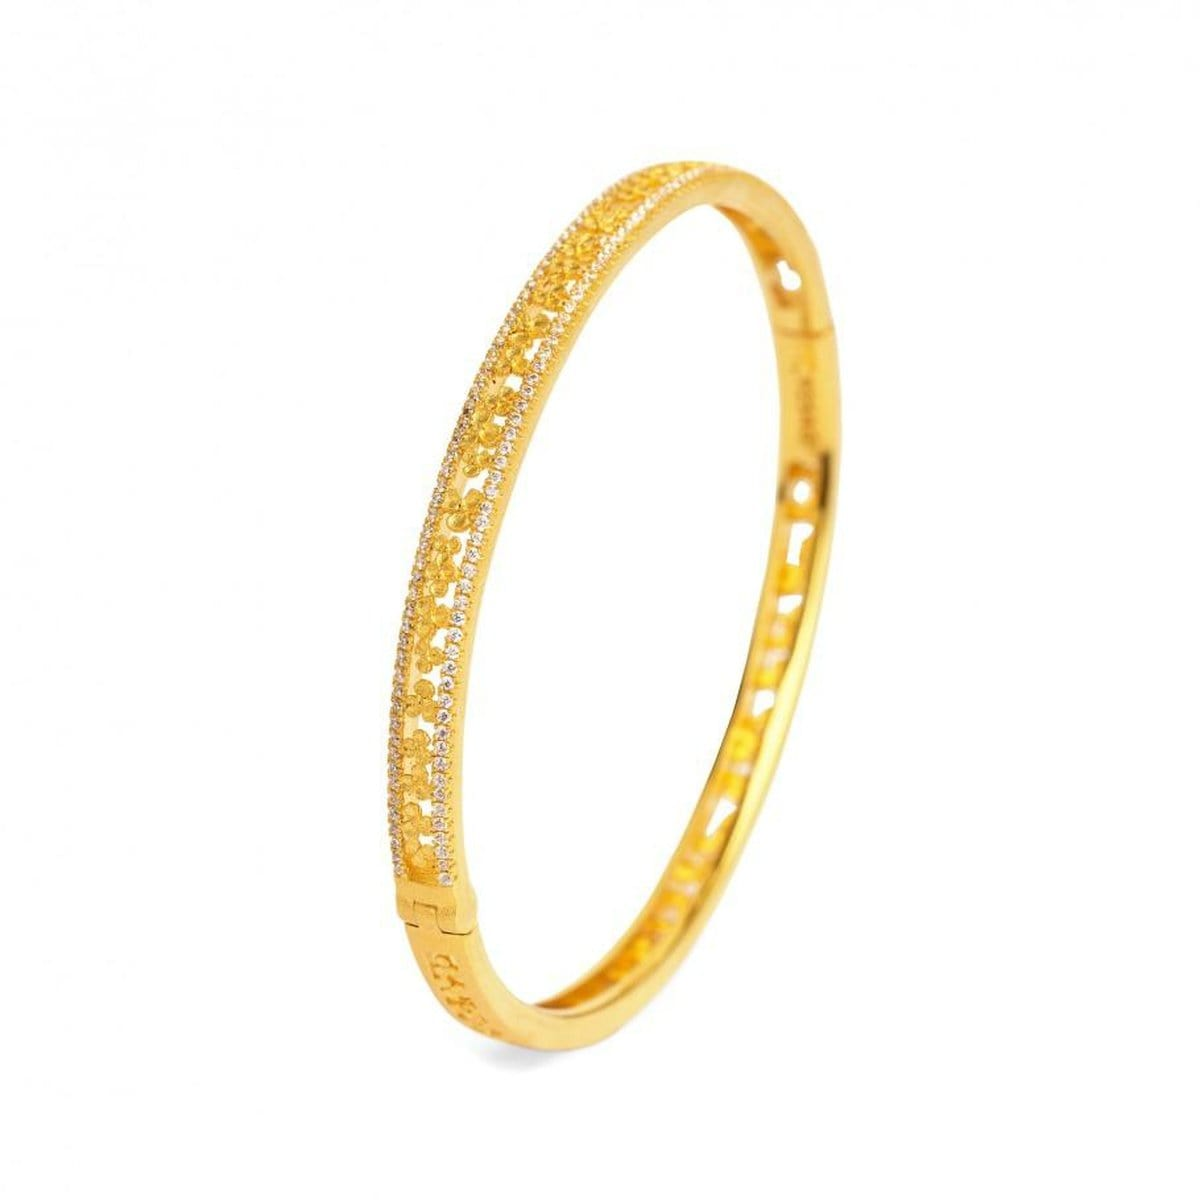 Leilini Zirconia Bangle - 63110156-Bernd Wolf-Renee Taylor Gallery